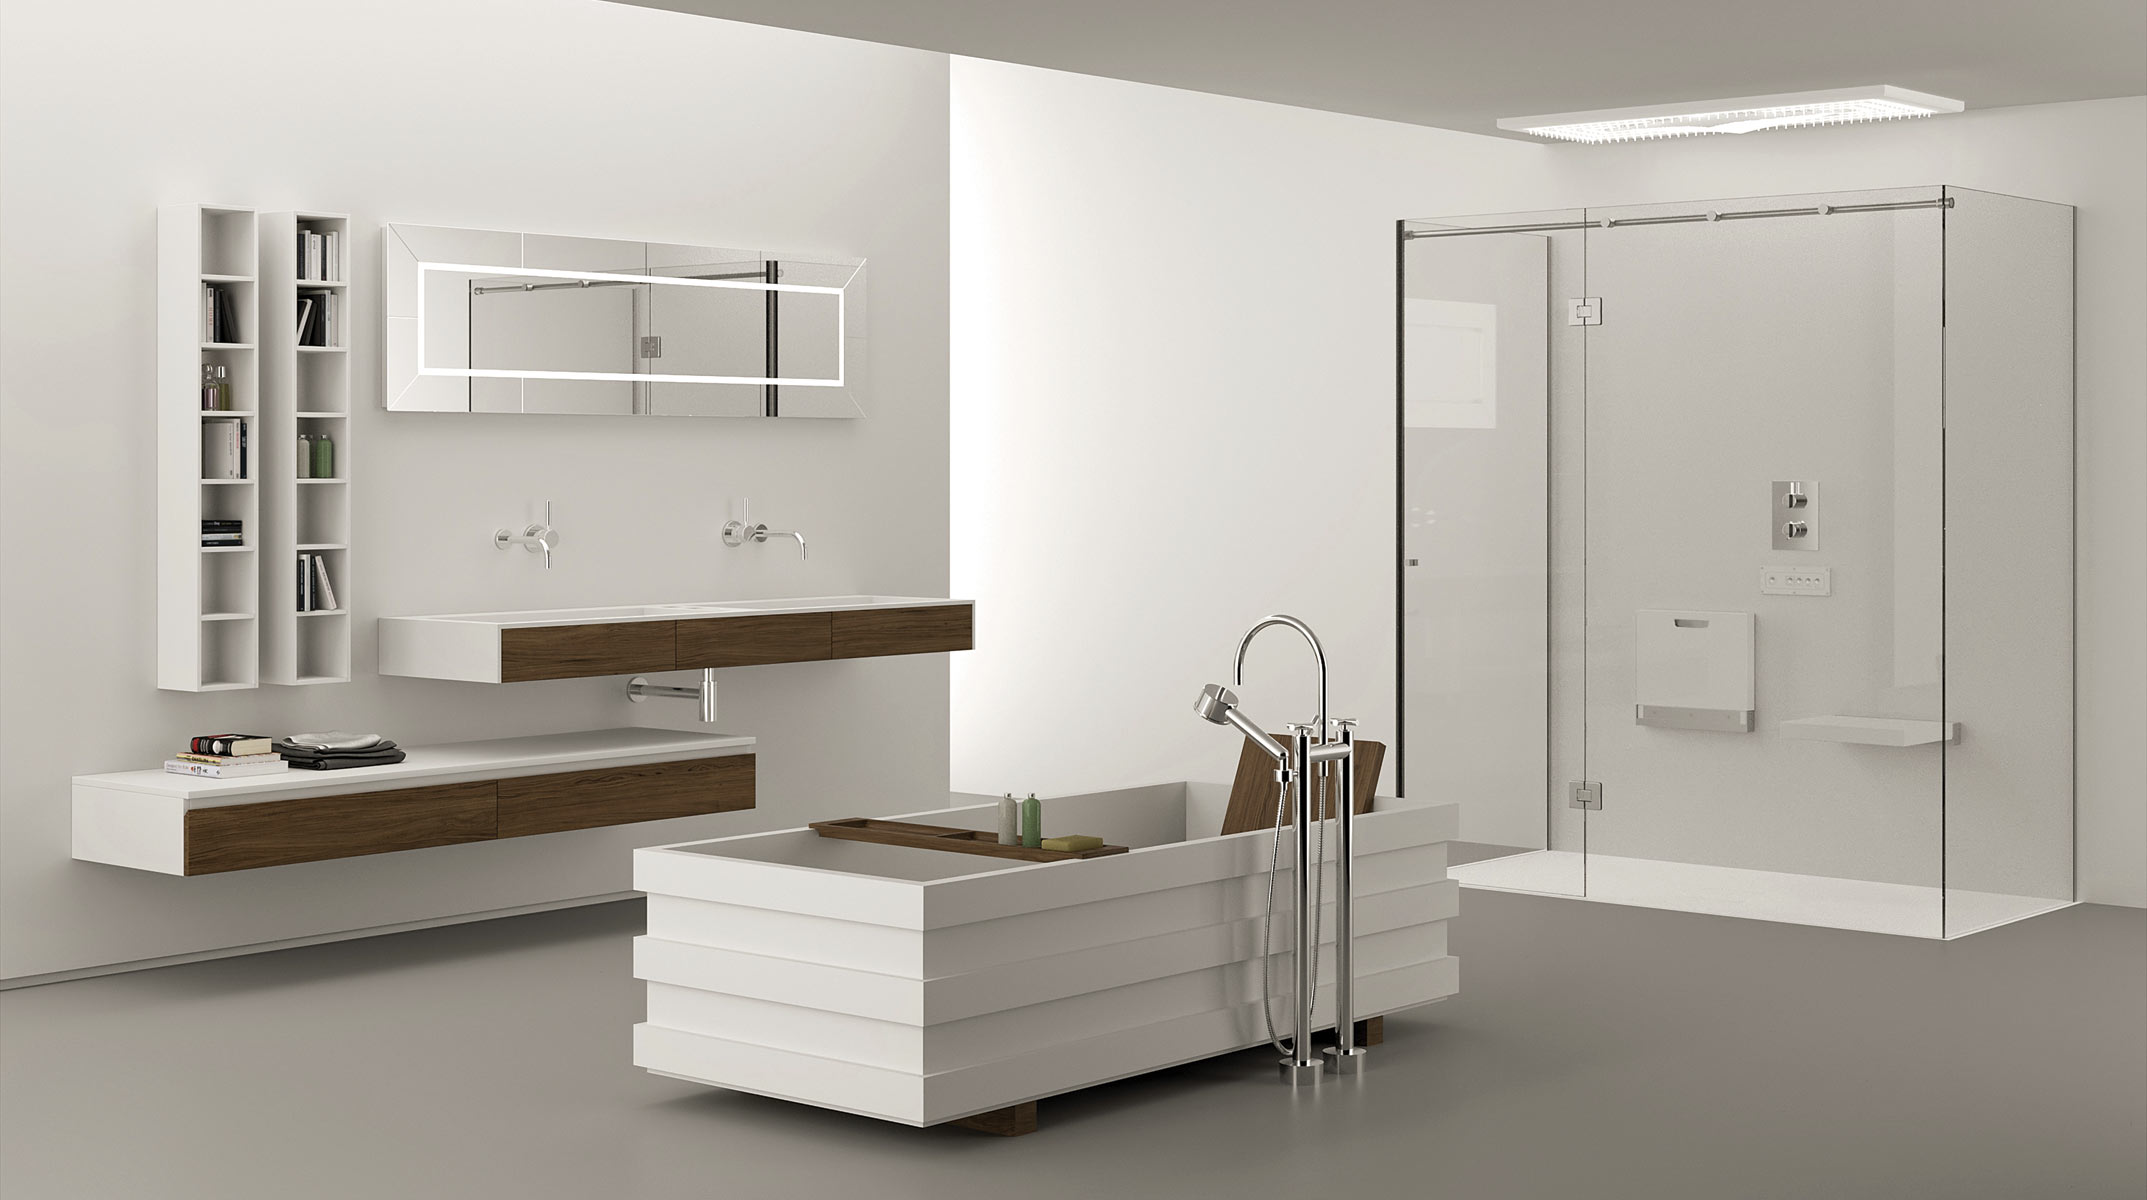 Bathroom furniture and moma design fireplaces for Portfolio di design di mobili